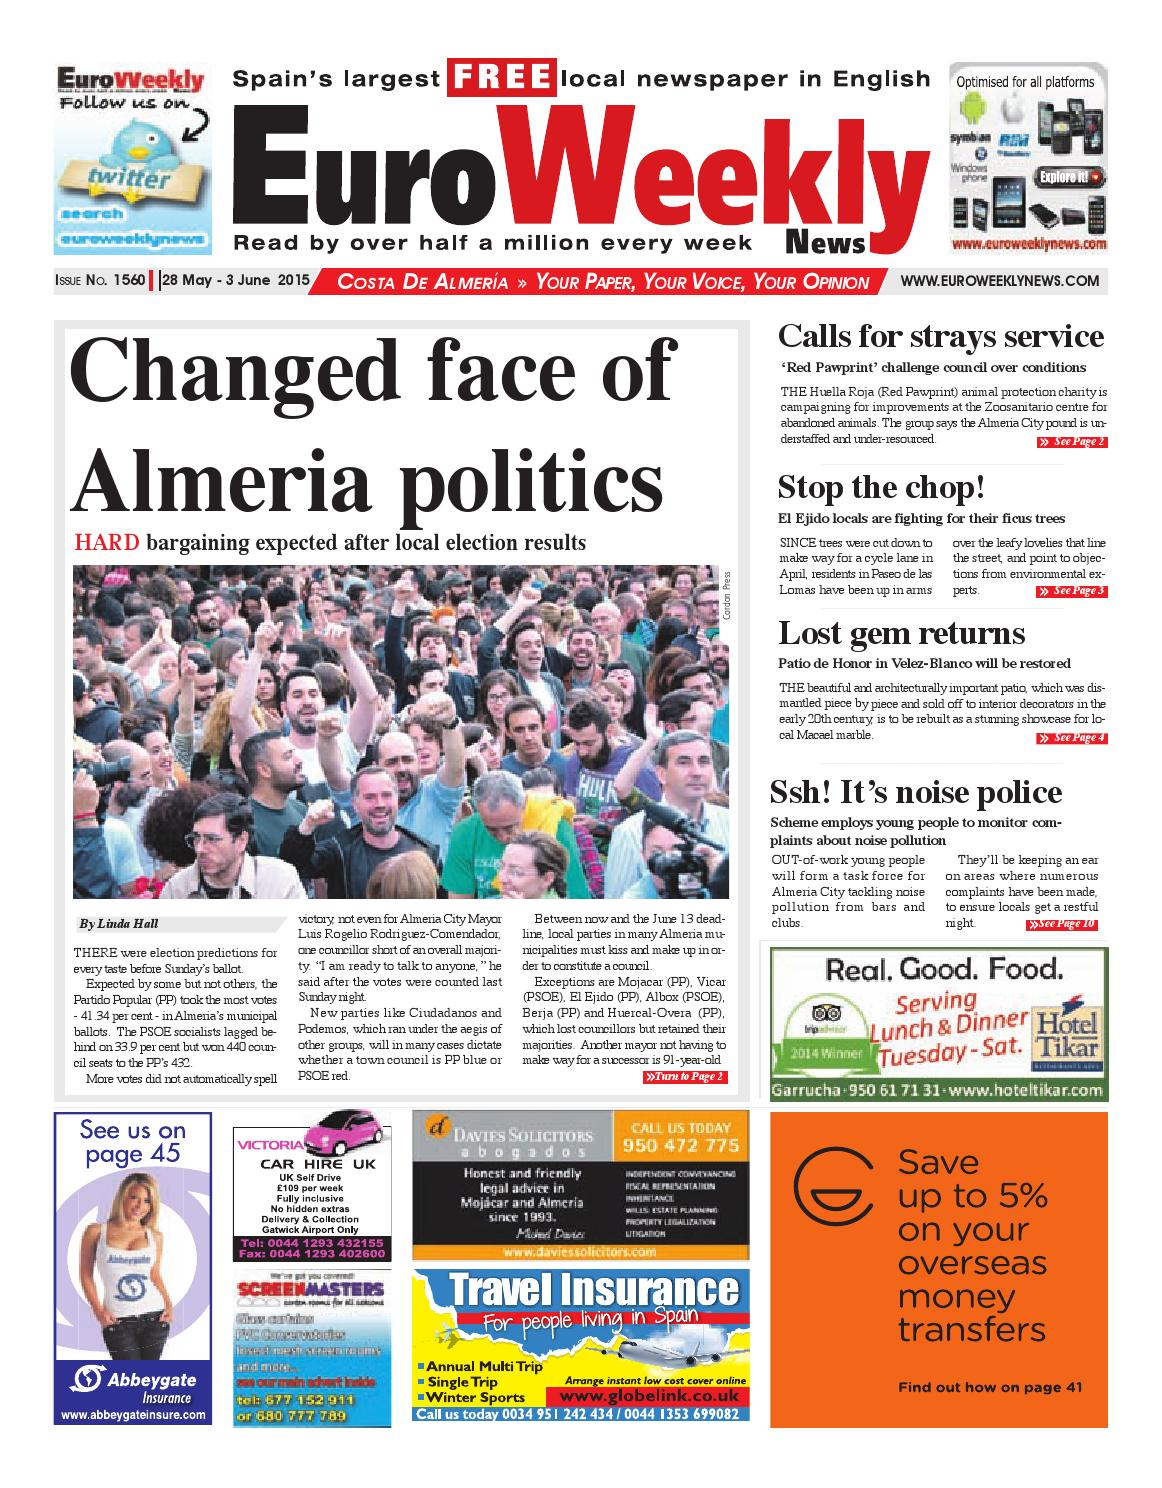 Euro Weekly News Costa De Almeria 28 May 3 June 2015 Issue  # Muebles Tejerina